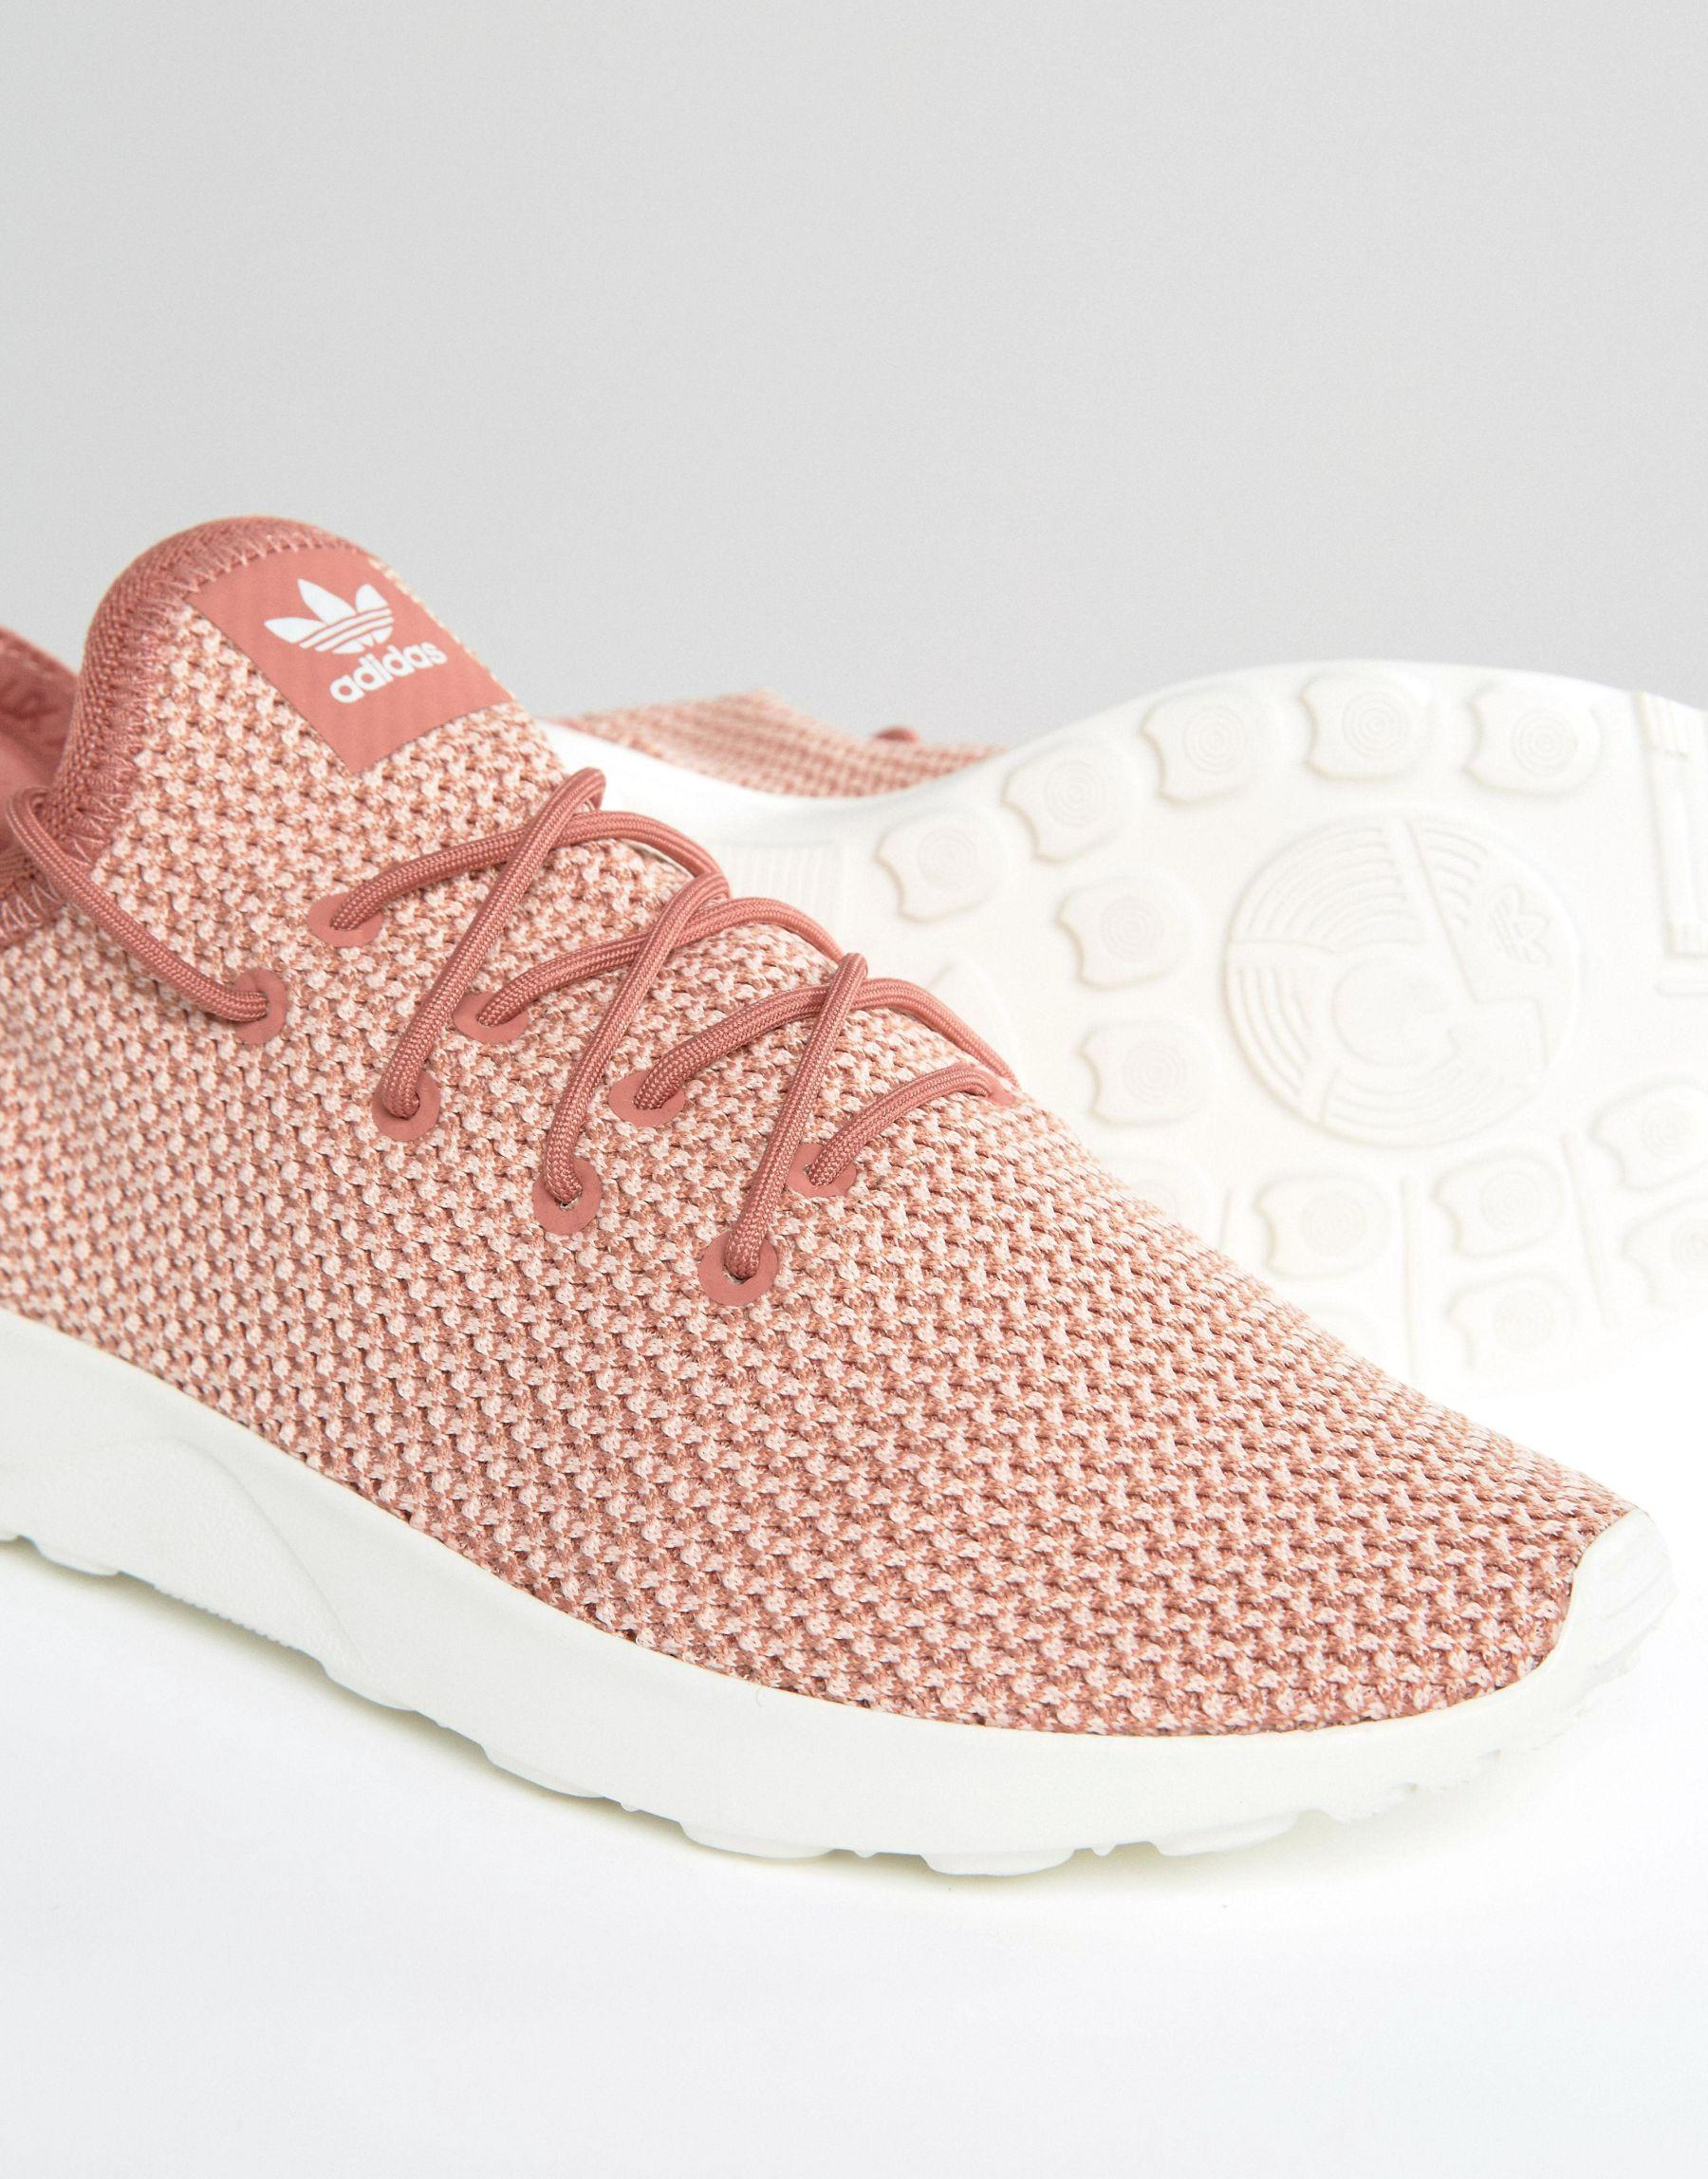 6e5d860f4 ... usa shoes lyst adidas originals originals dusky pink zx flux adv  sneakers in 84778 8ccae